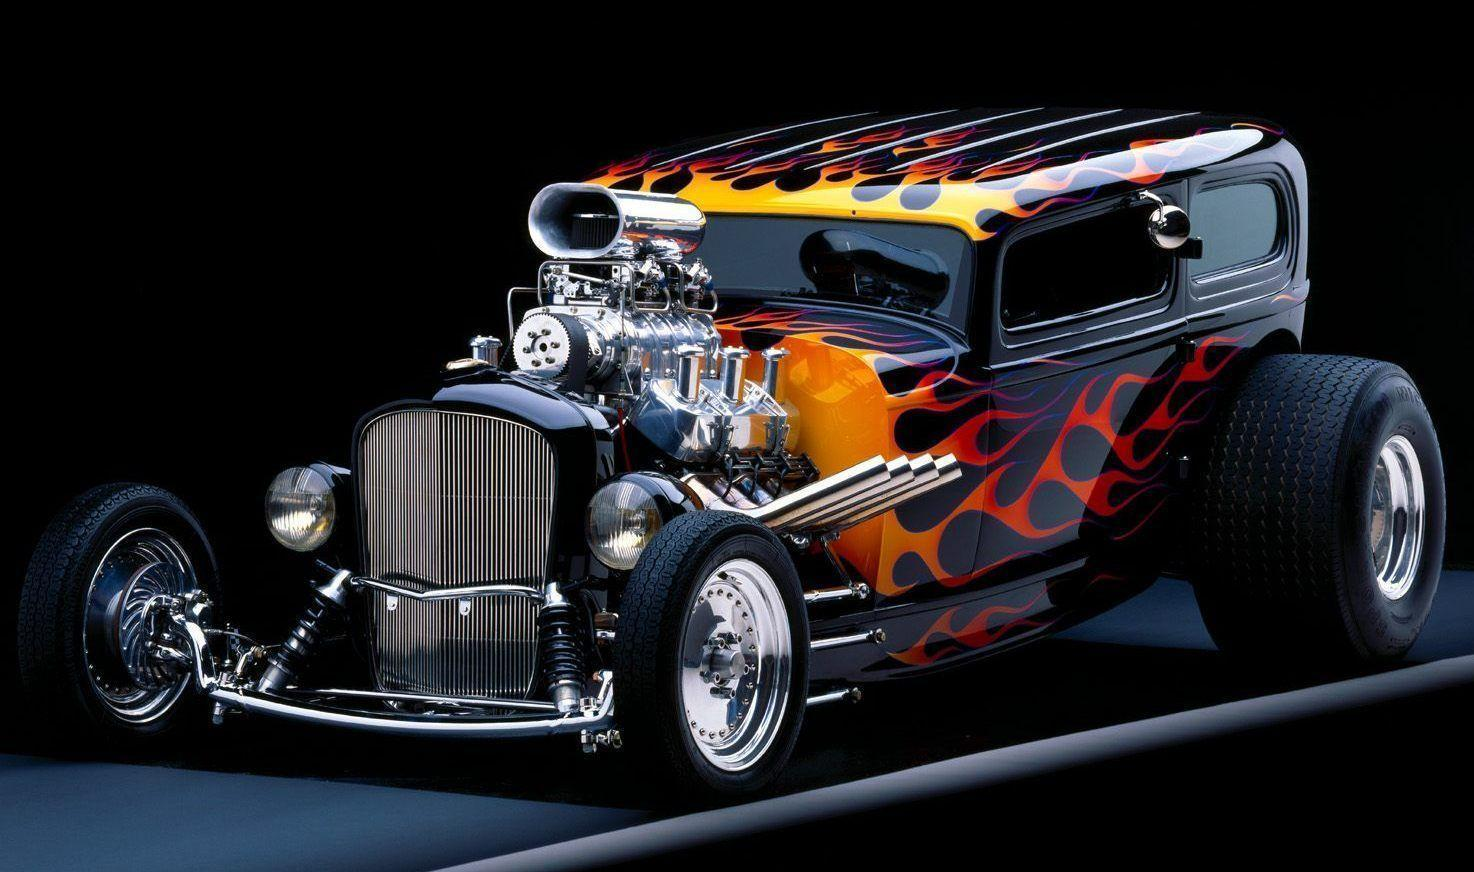 Cool Muscle Cars Wallpapers Wallpaper Cave - Cool muscle cars